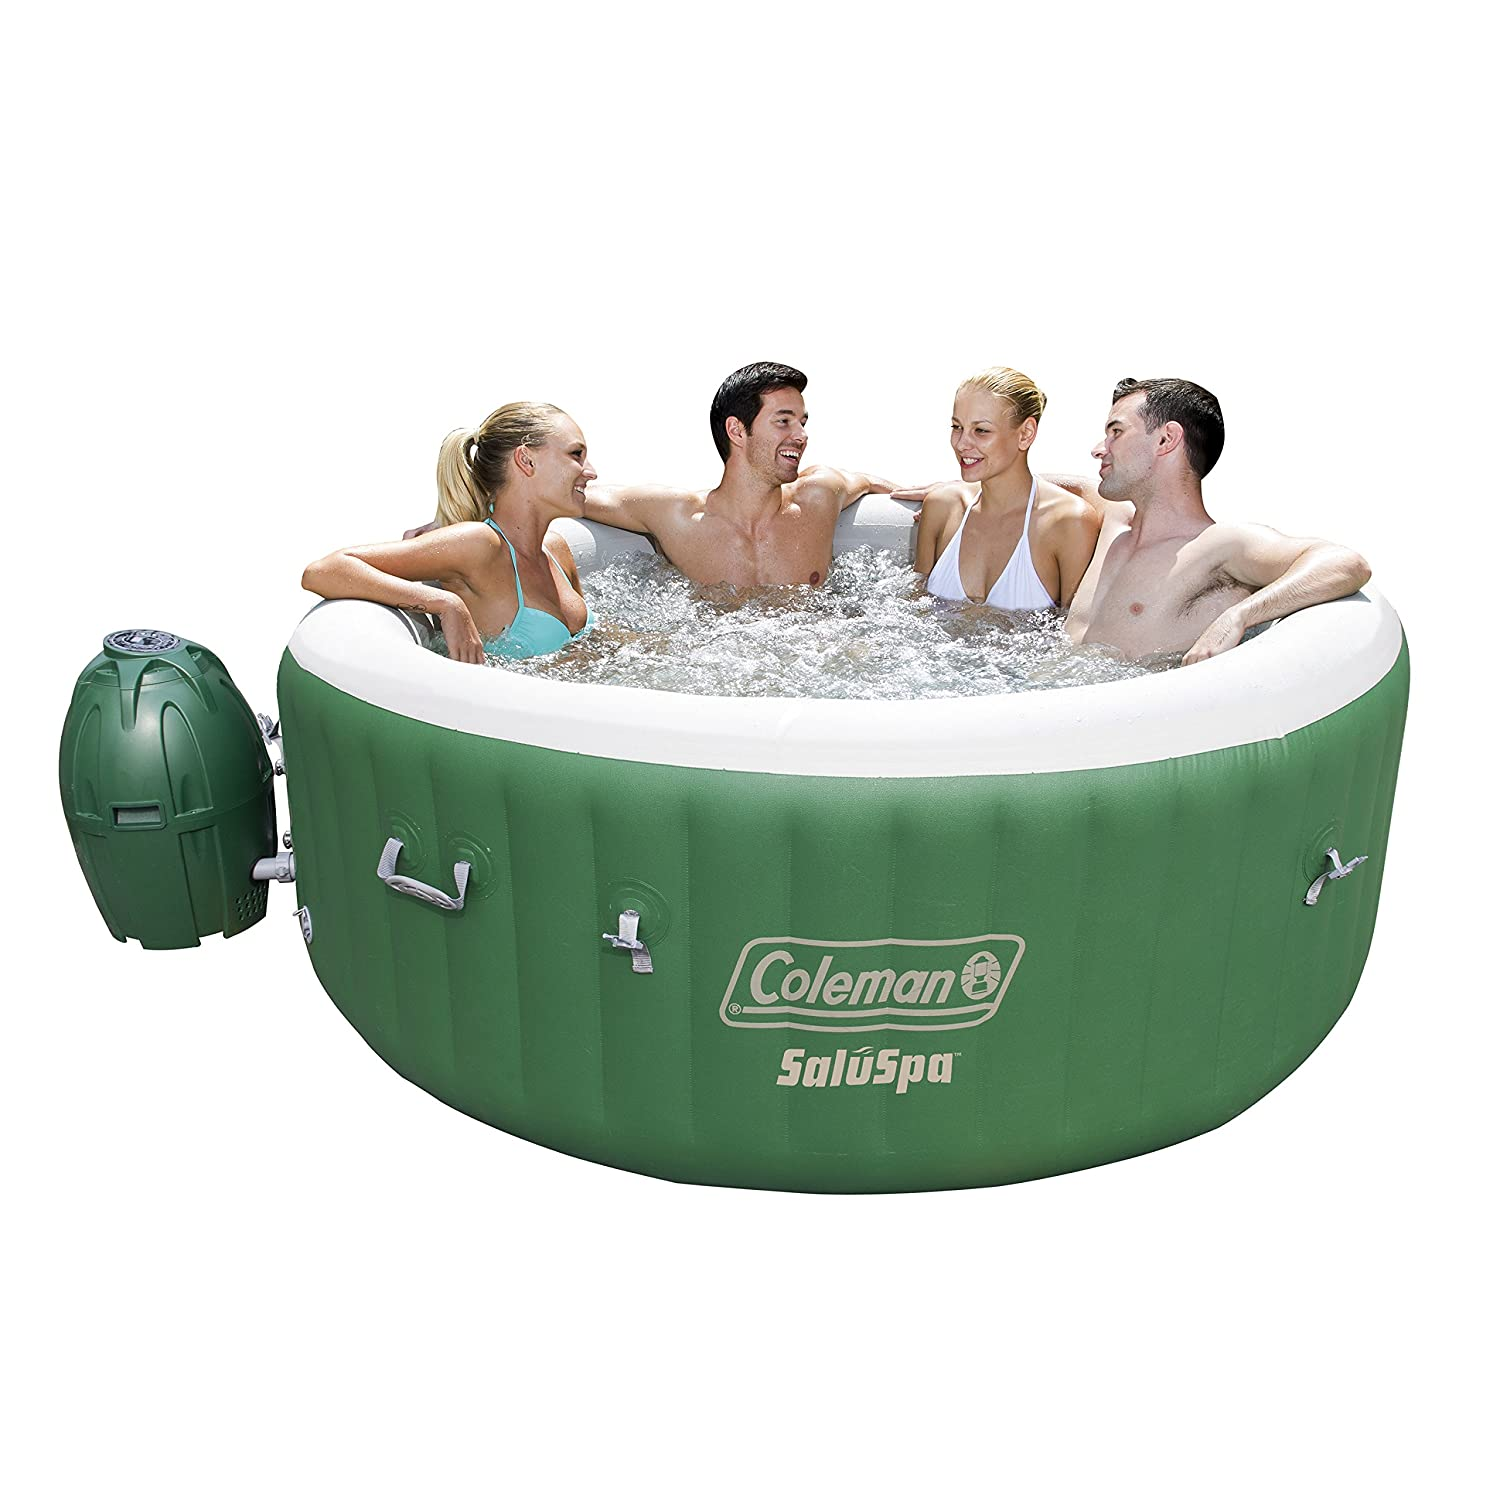 Amazon.com : Coleman SaluSpa Inflatable Hot Tub : Garden & Outdoor